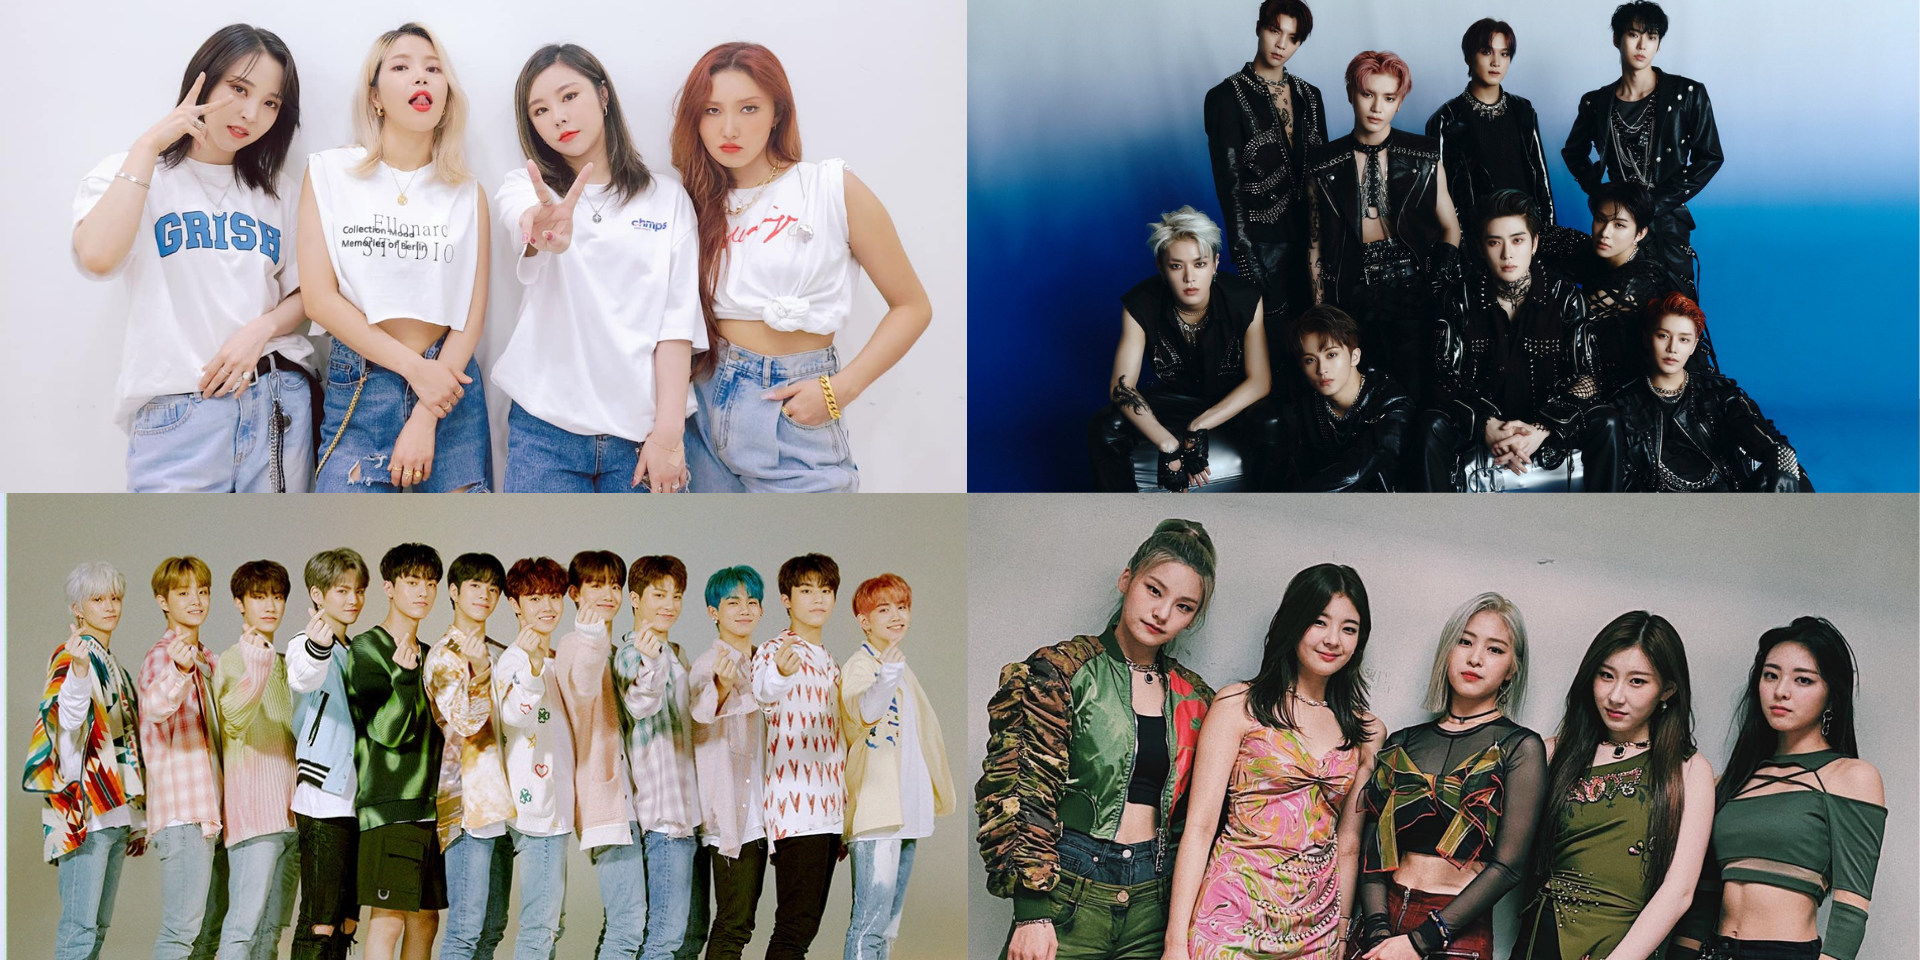 asia artist awards 2020 lineup revealed nct 127 mamamoo treasure asia artist awards 2020 lineup revealed